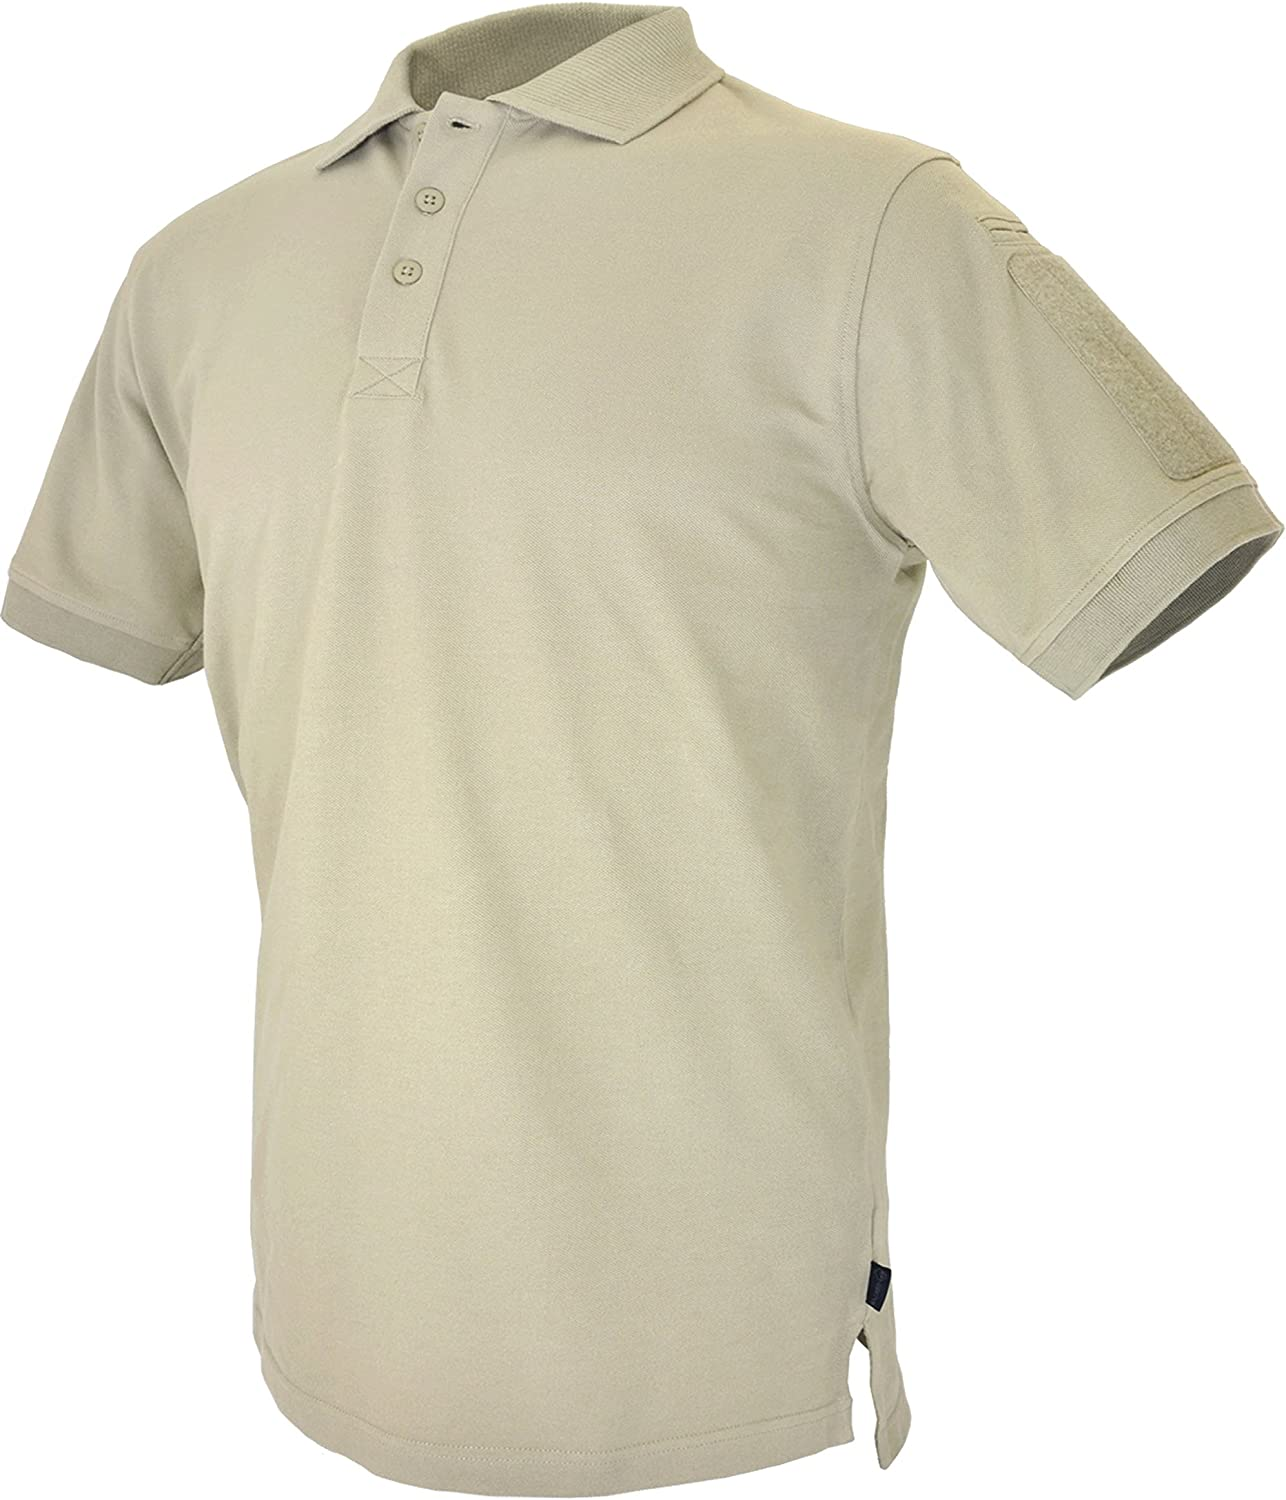 HAZARD 4 Quickdry Undervest Battle TM Polo Breathable Tactical Max 83% OFF Indefinitely